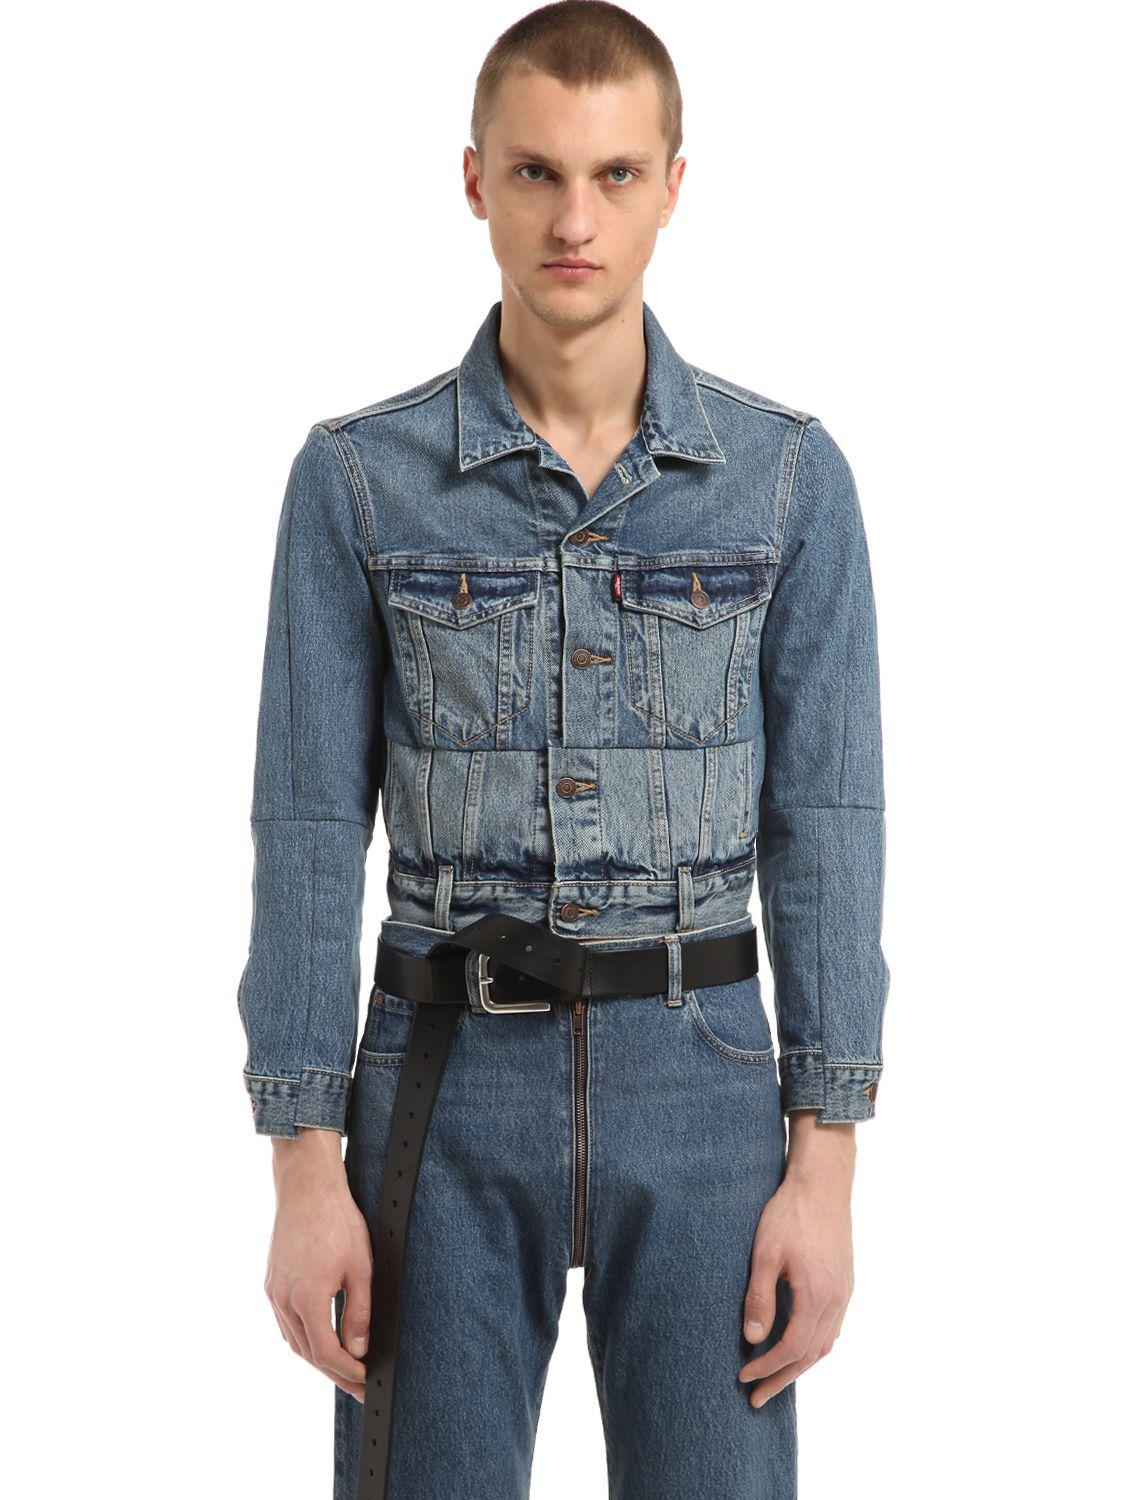 Zappos Mens Jeans